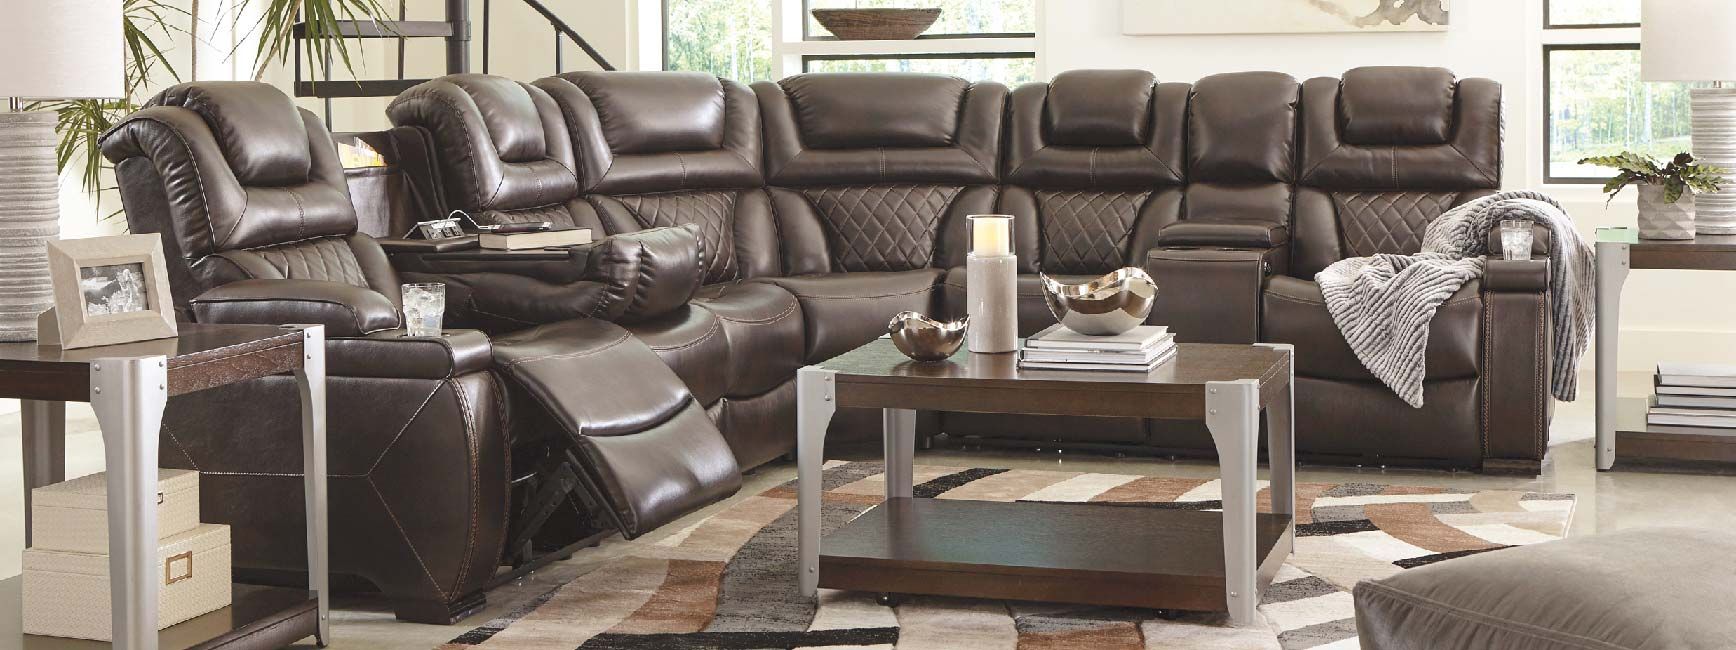 Visit Our Home Furniture Store in Sacramento, CA